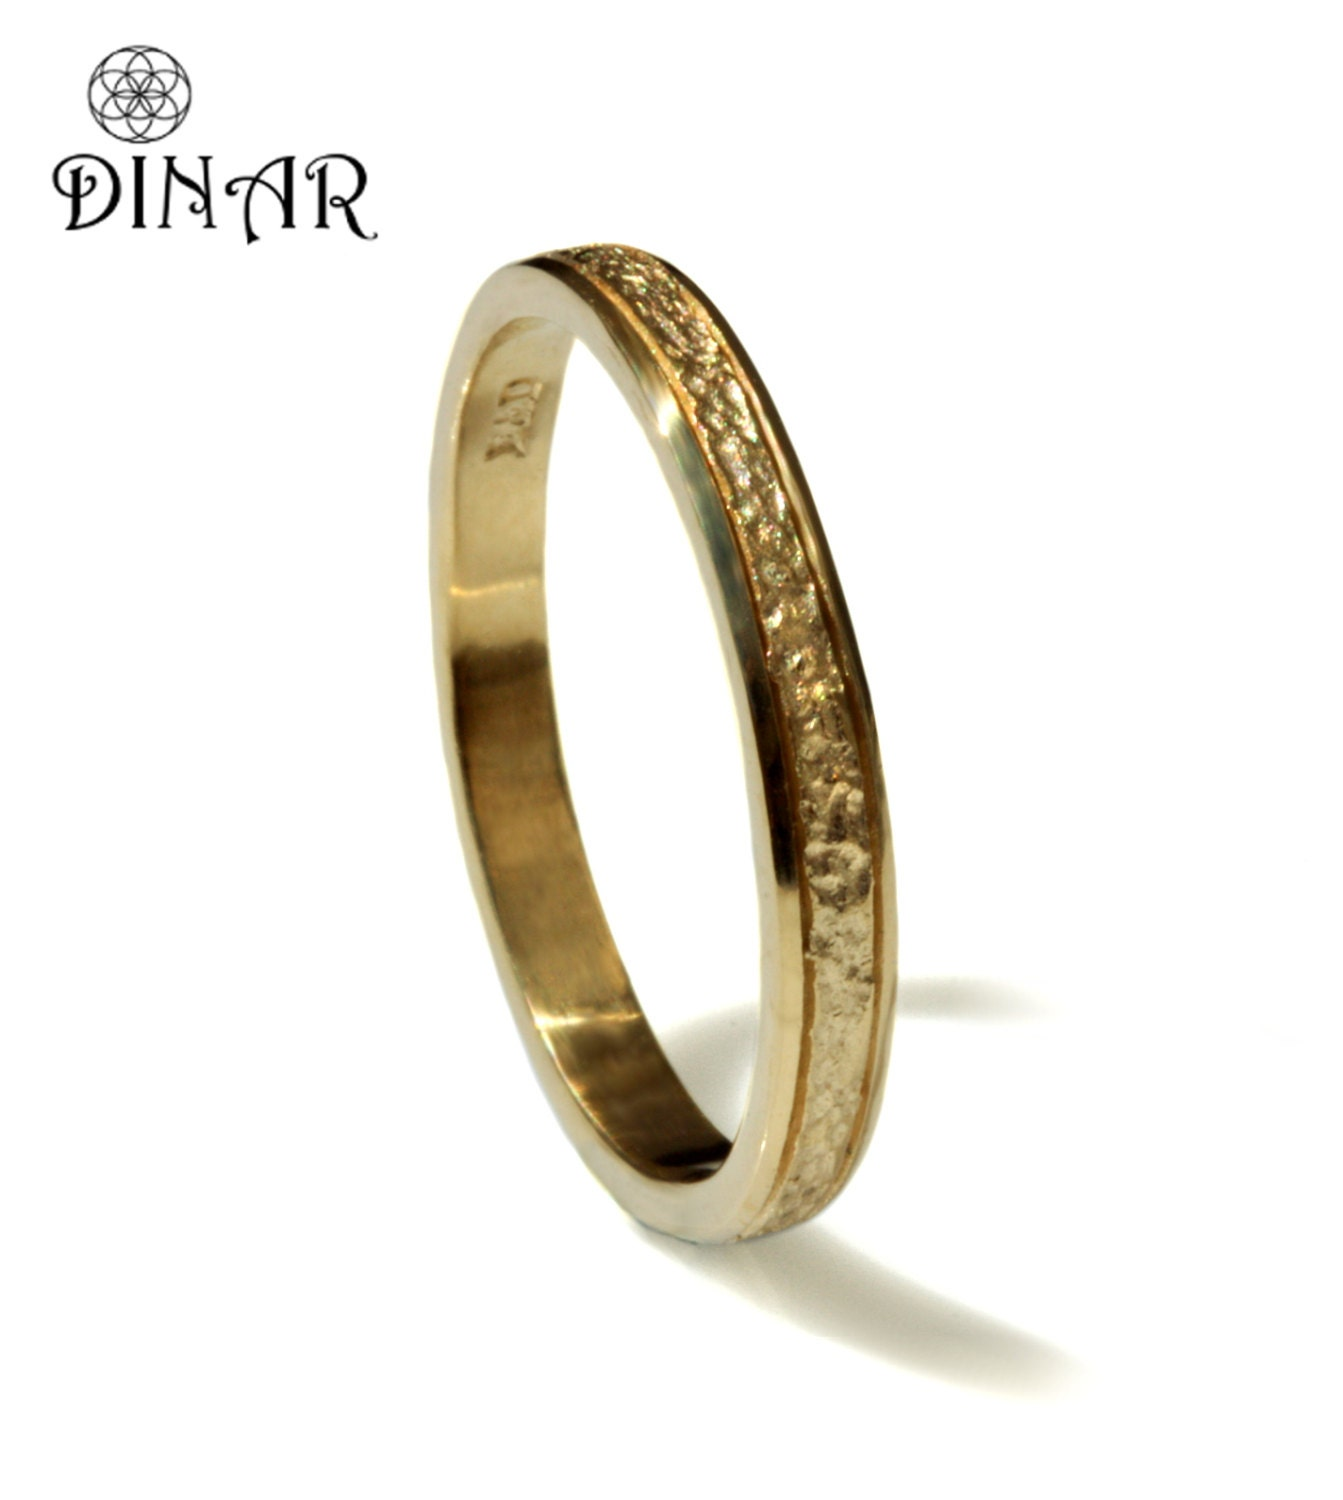 hammered wedding ring thin 14k solid yellow gold wedding